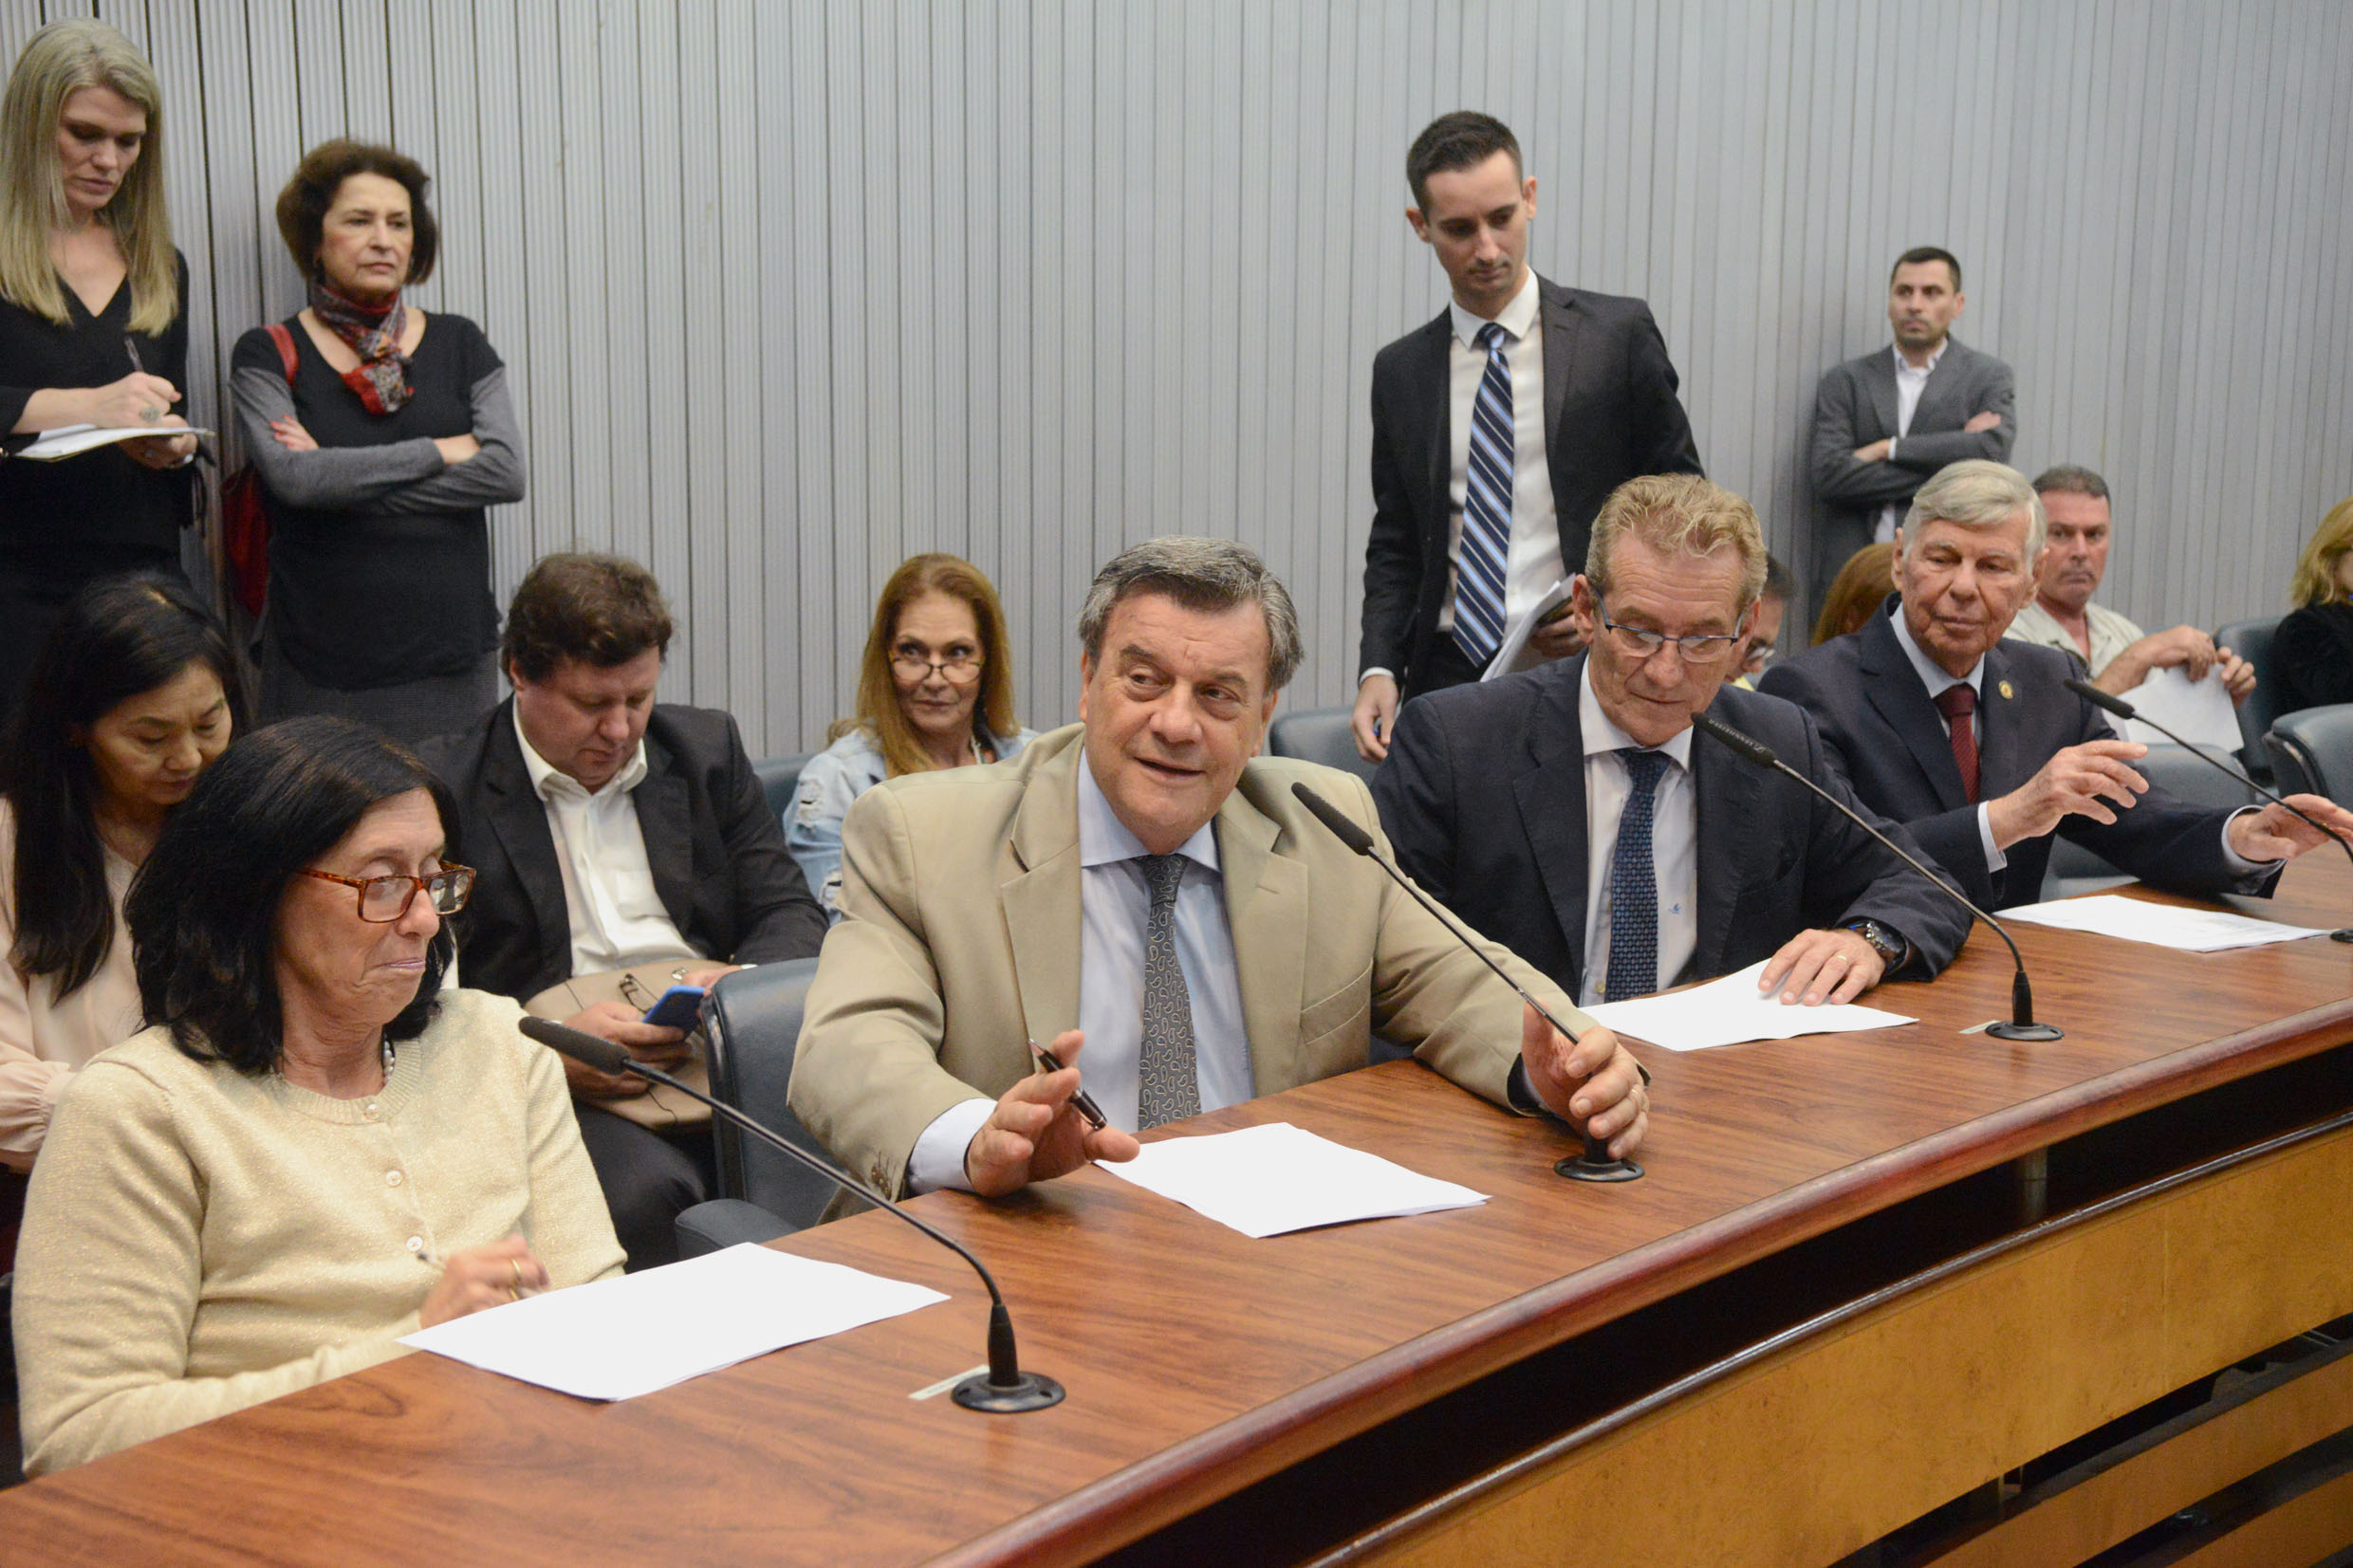 Parlamentares na comissão<a style='float:right' href='https://www3.al.sp.gov.br/repositorio/noticia/N-10-2018/fg227027.jpg' target=_blank><img src='/_img/material-file-download-white.png' width='14px' alt='Clique para baixar a imagem'></a>